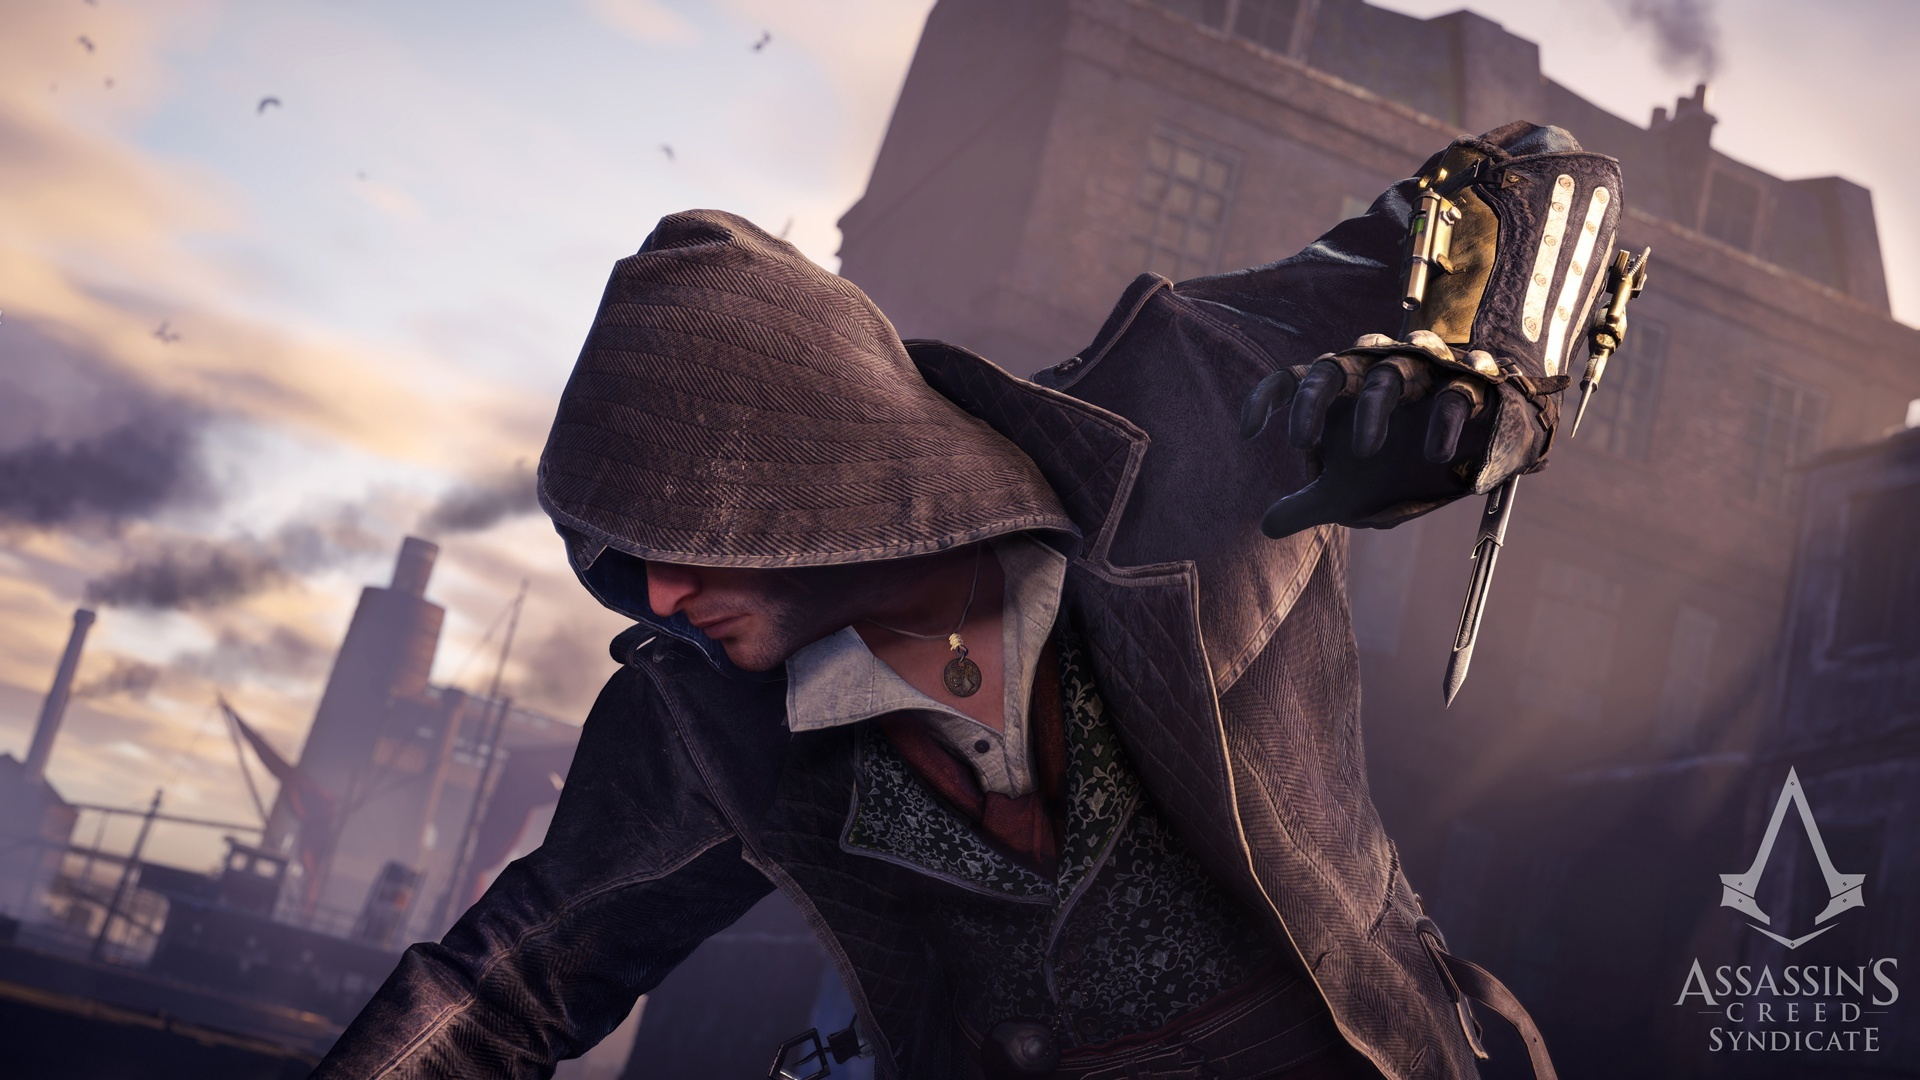 Jacob Frye Hidden Blade Assassins Creed Syndicate Wallpapers